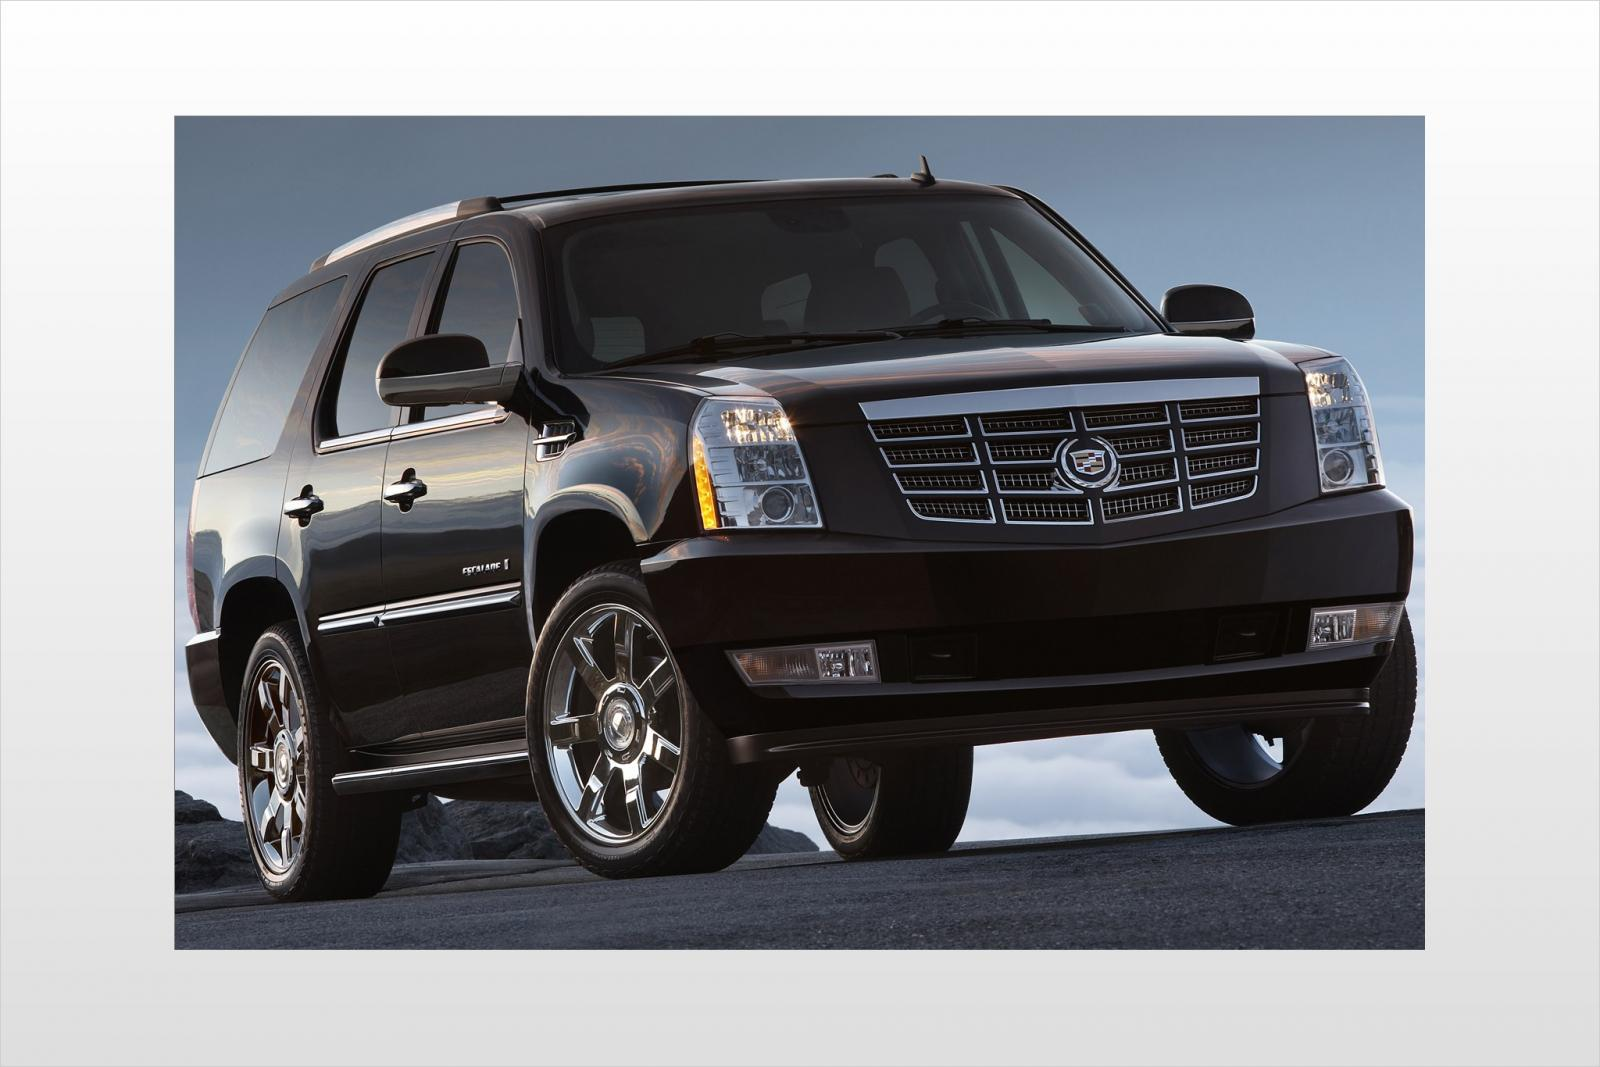 2008 cadillac escalade information and photos zombiedrive. Black Bedroom Furniture Sets. Home Design Ideas